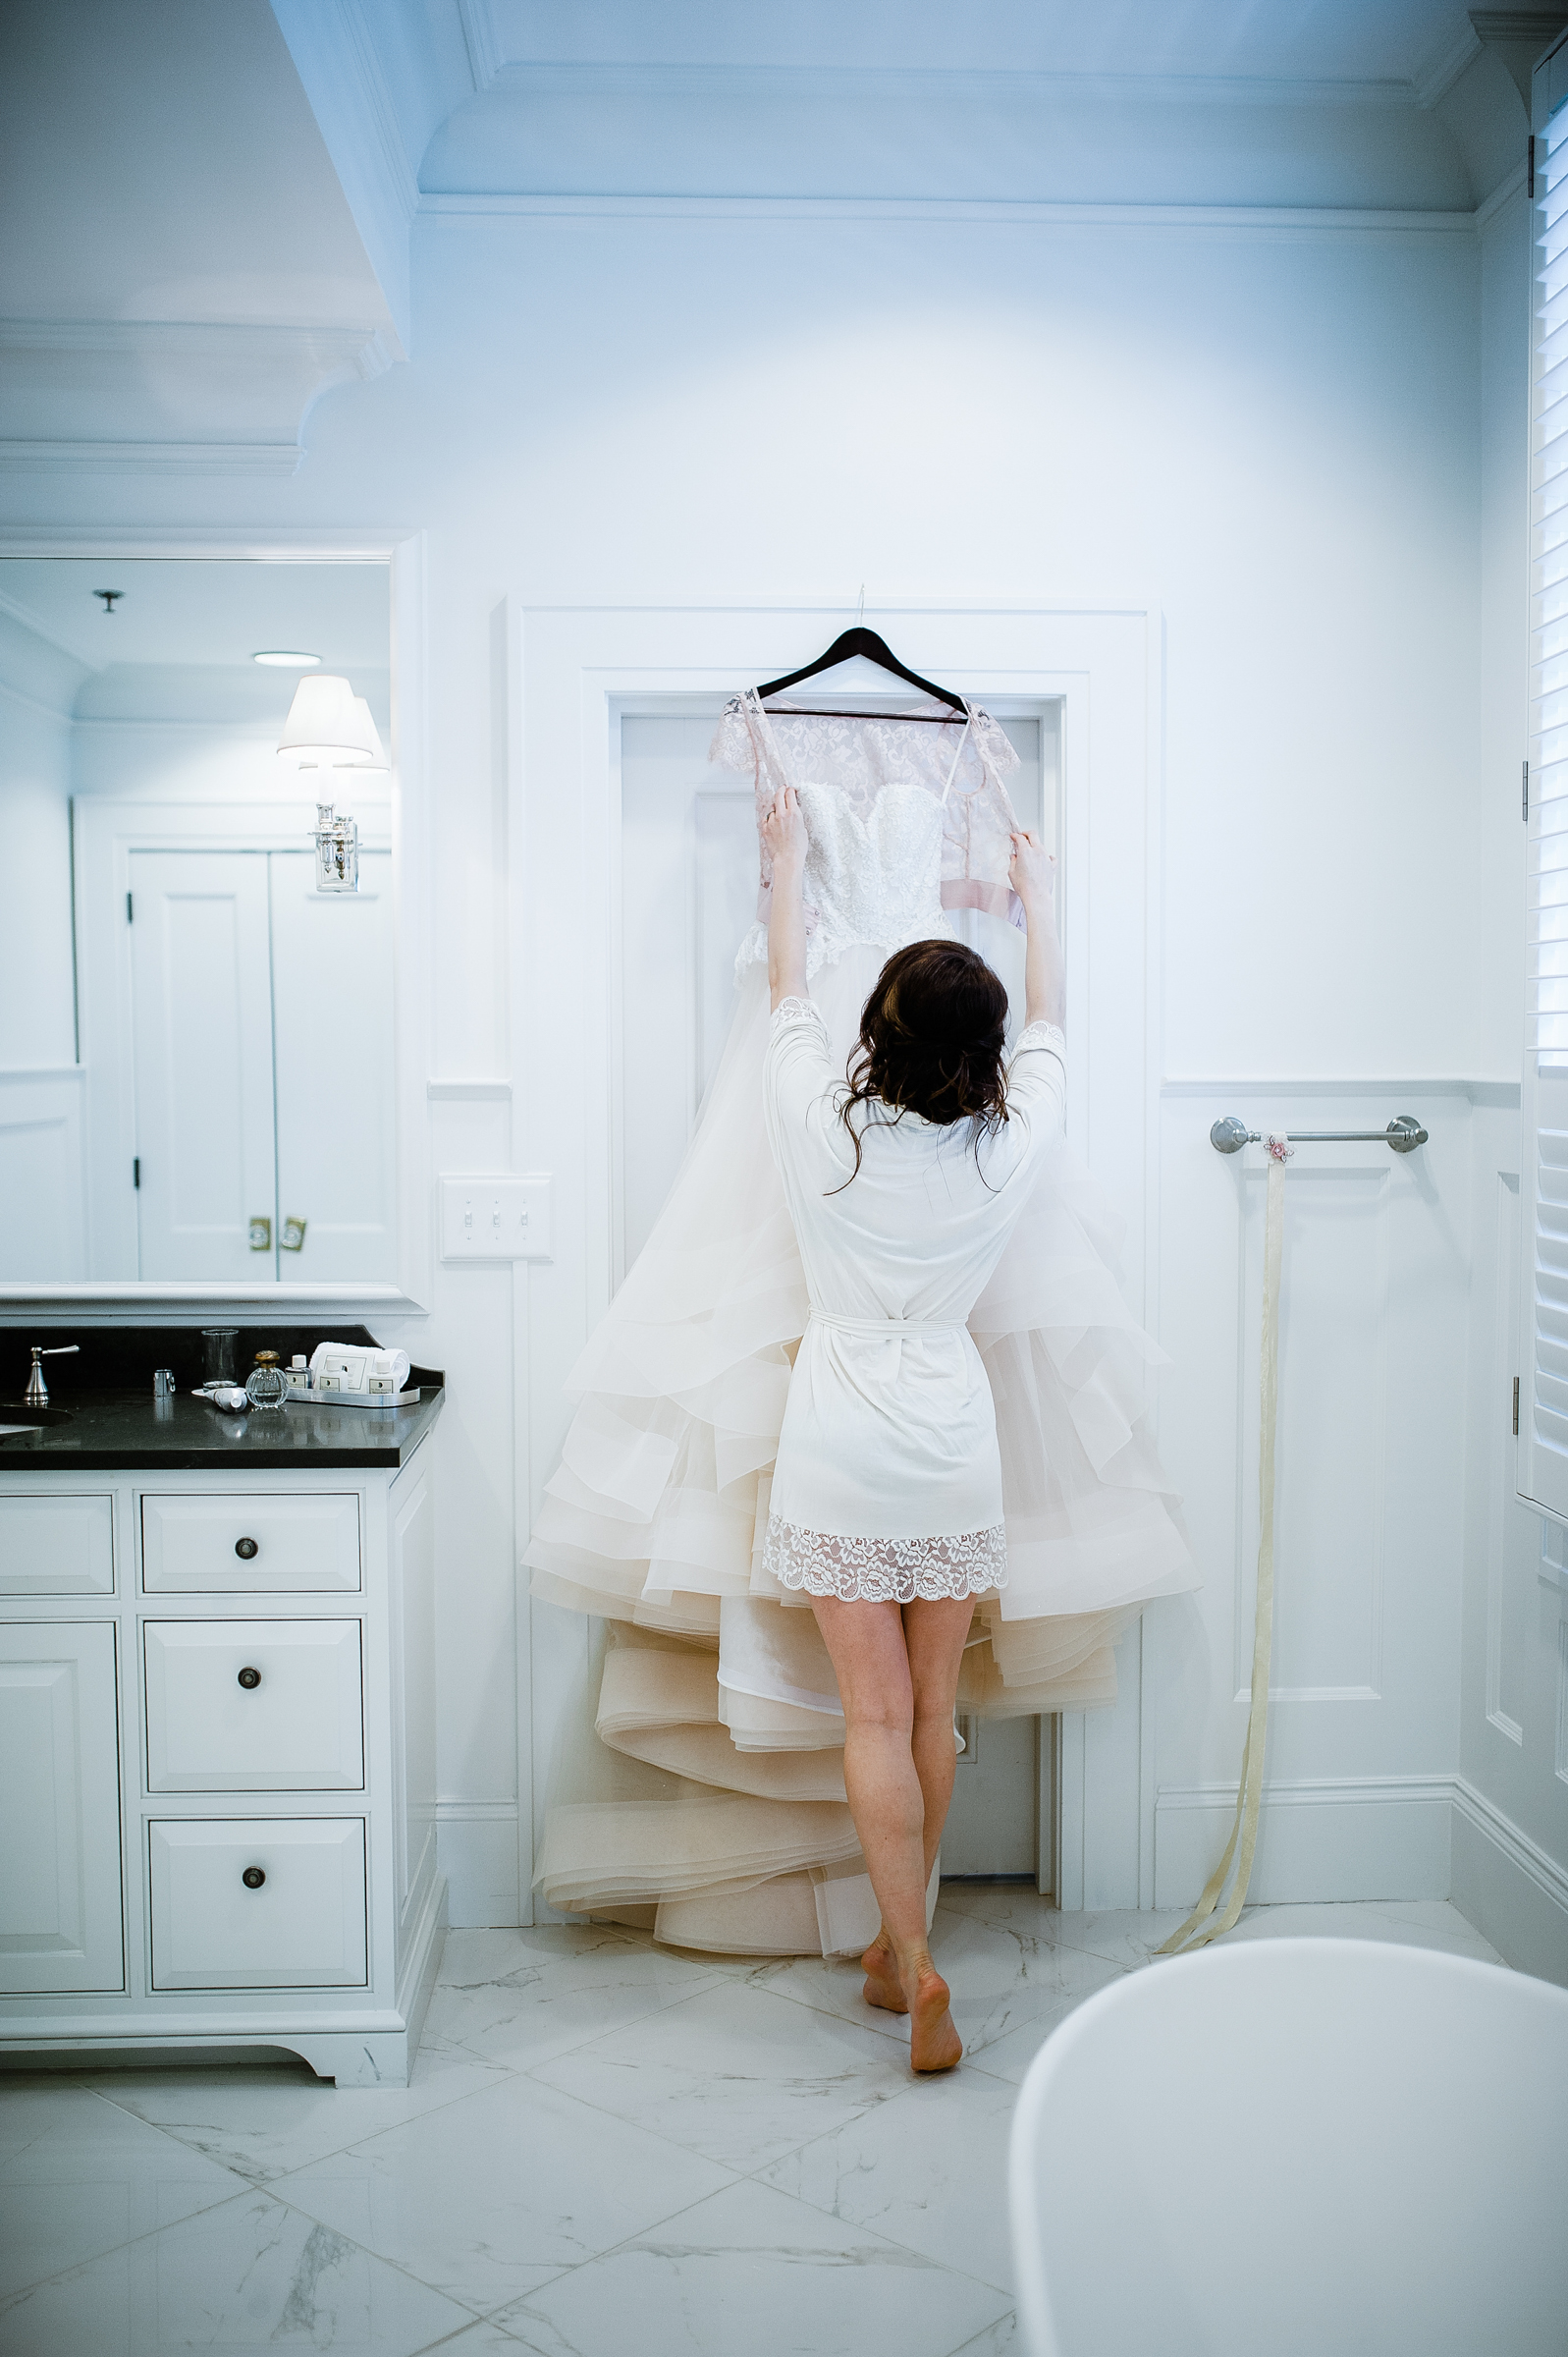 Bride reaches for her wedding gown in bright dressing room - photo by Richard Israel Photography